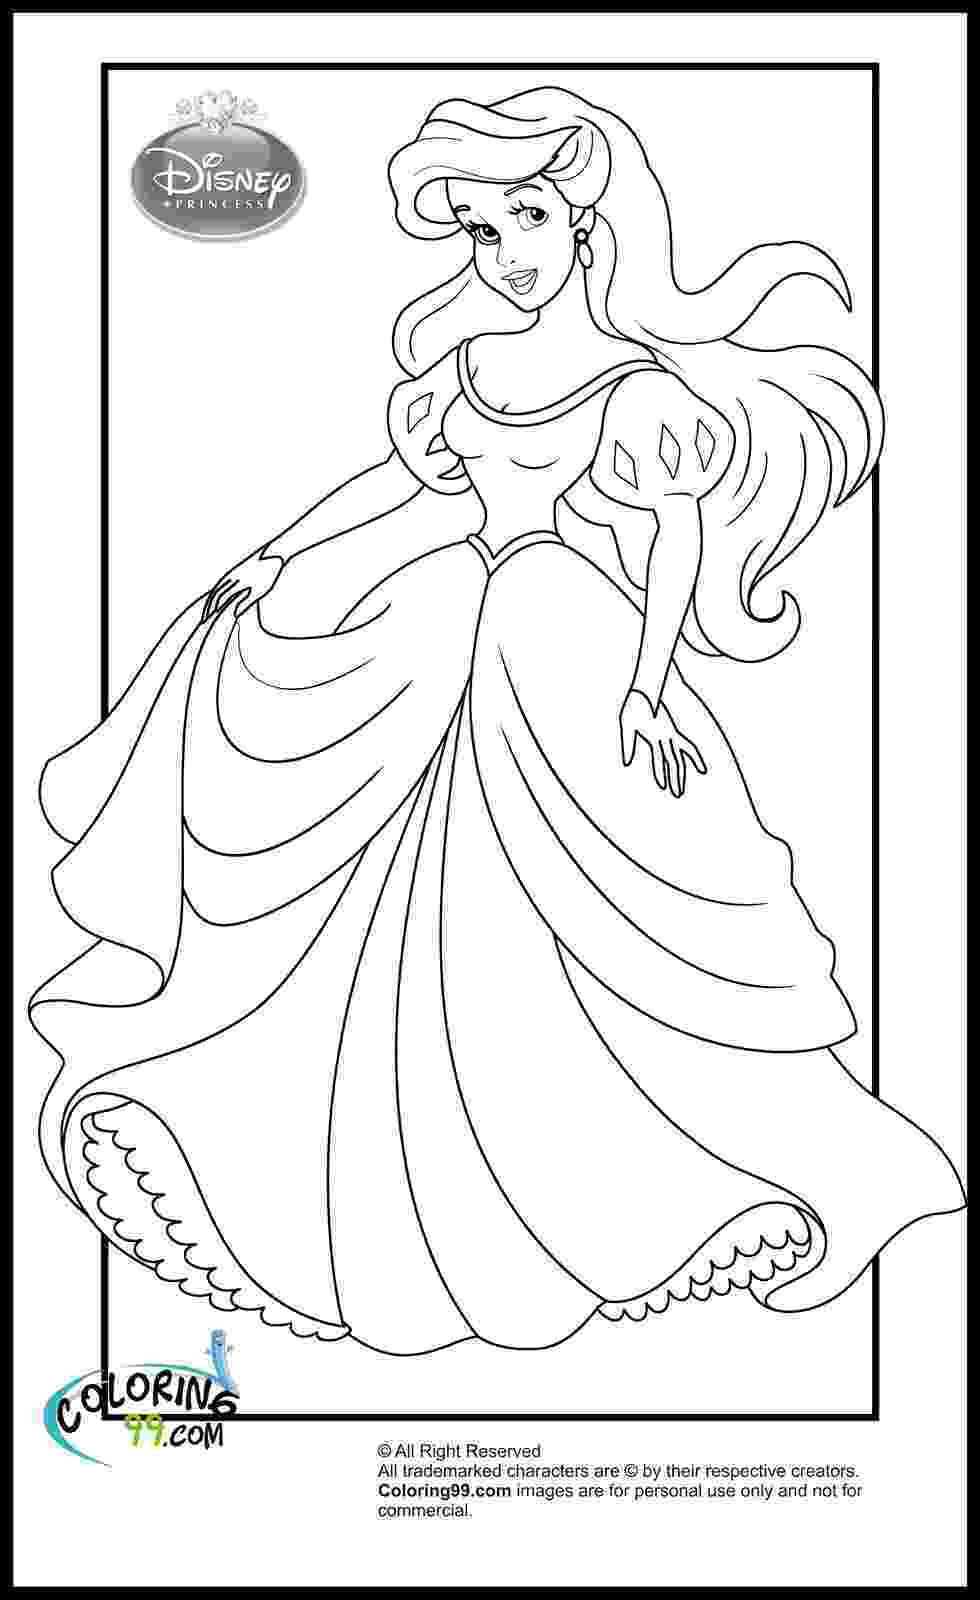 coloring pages princesses disney princess coloring pages minister coloring coloring princesses pages